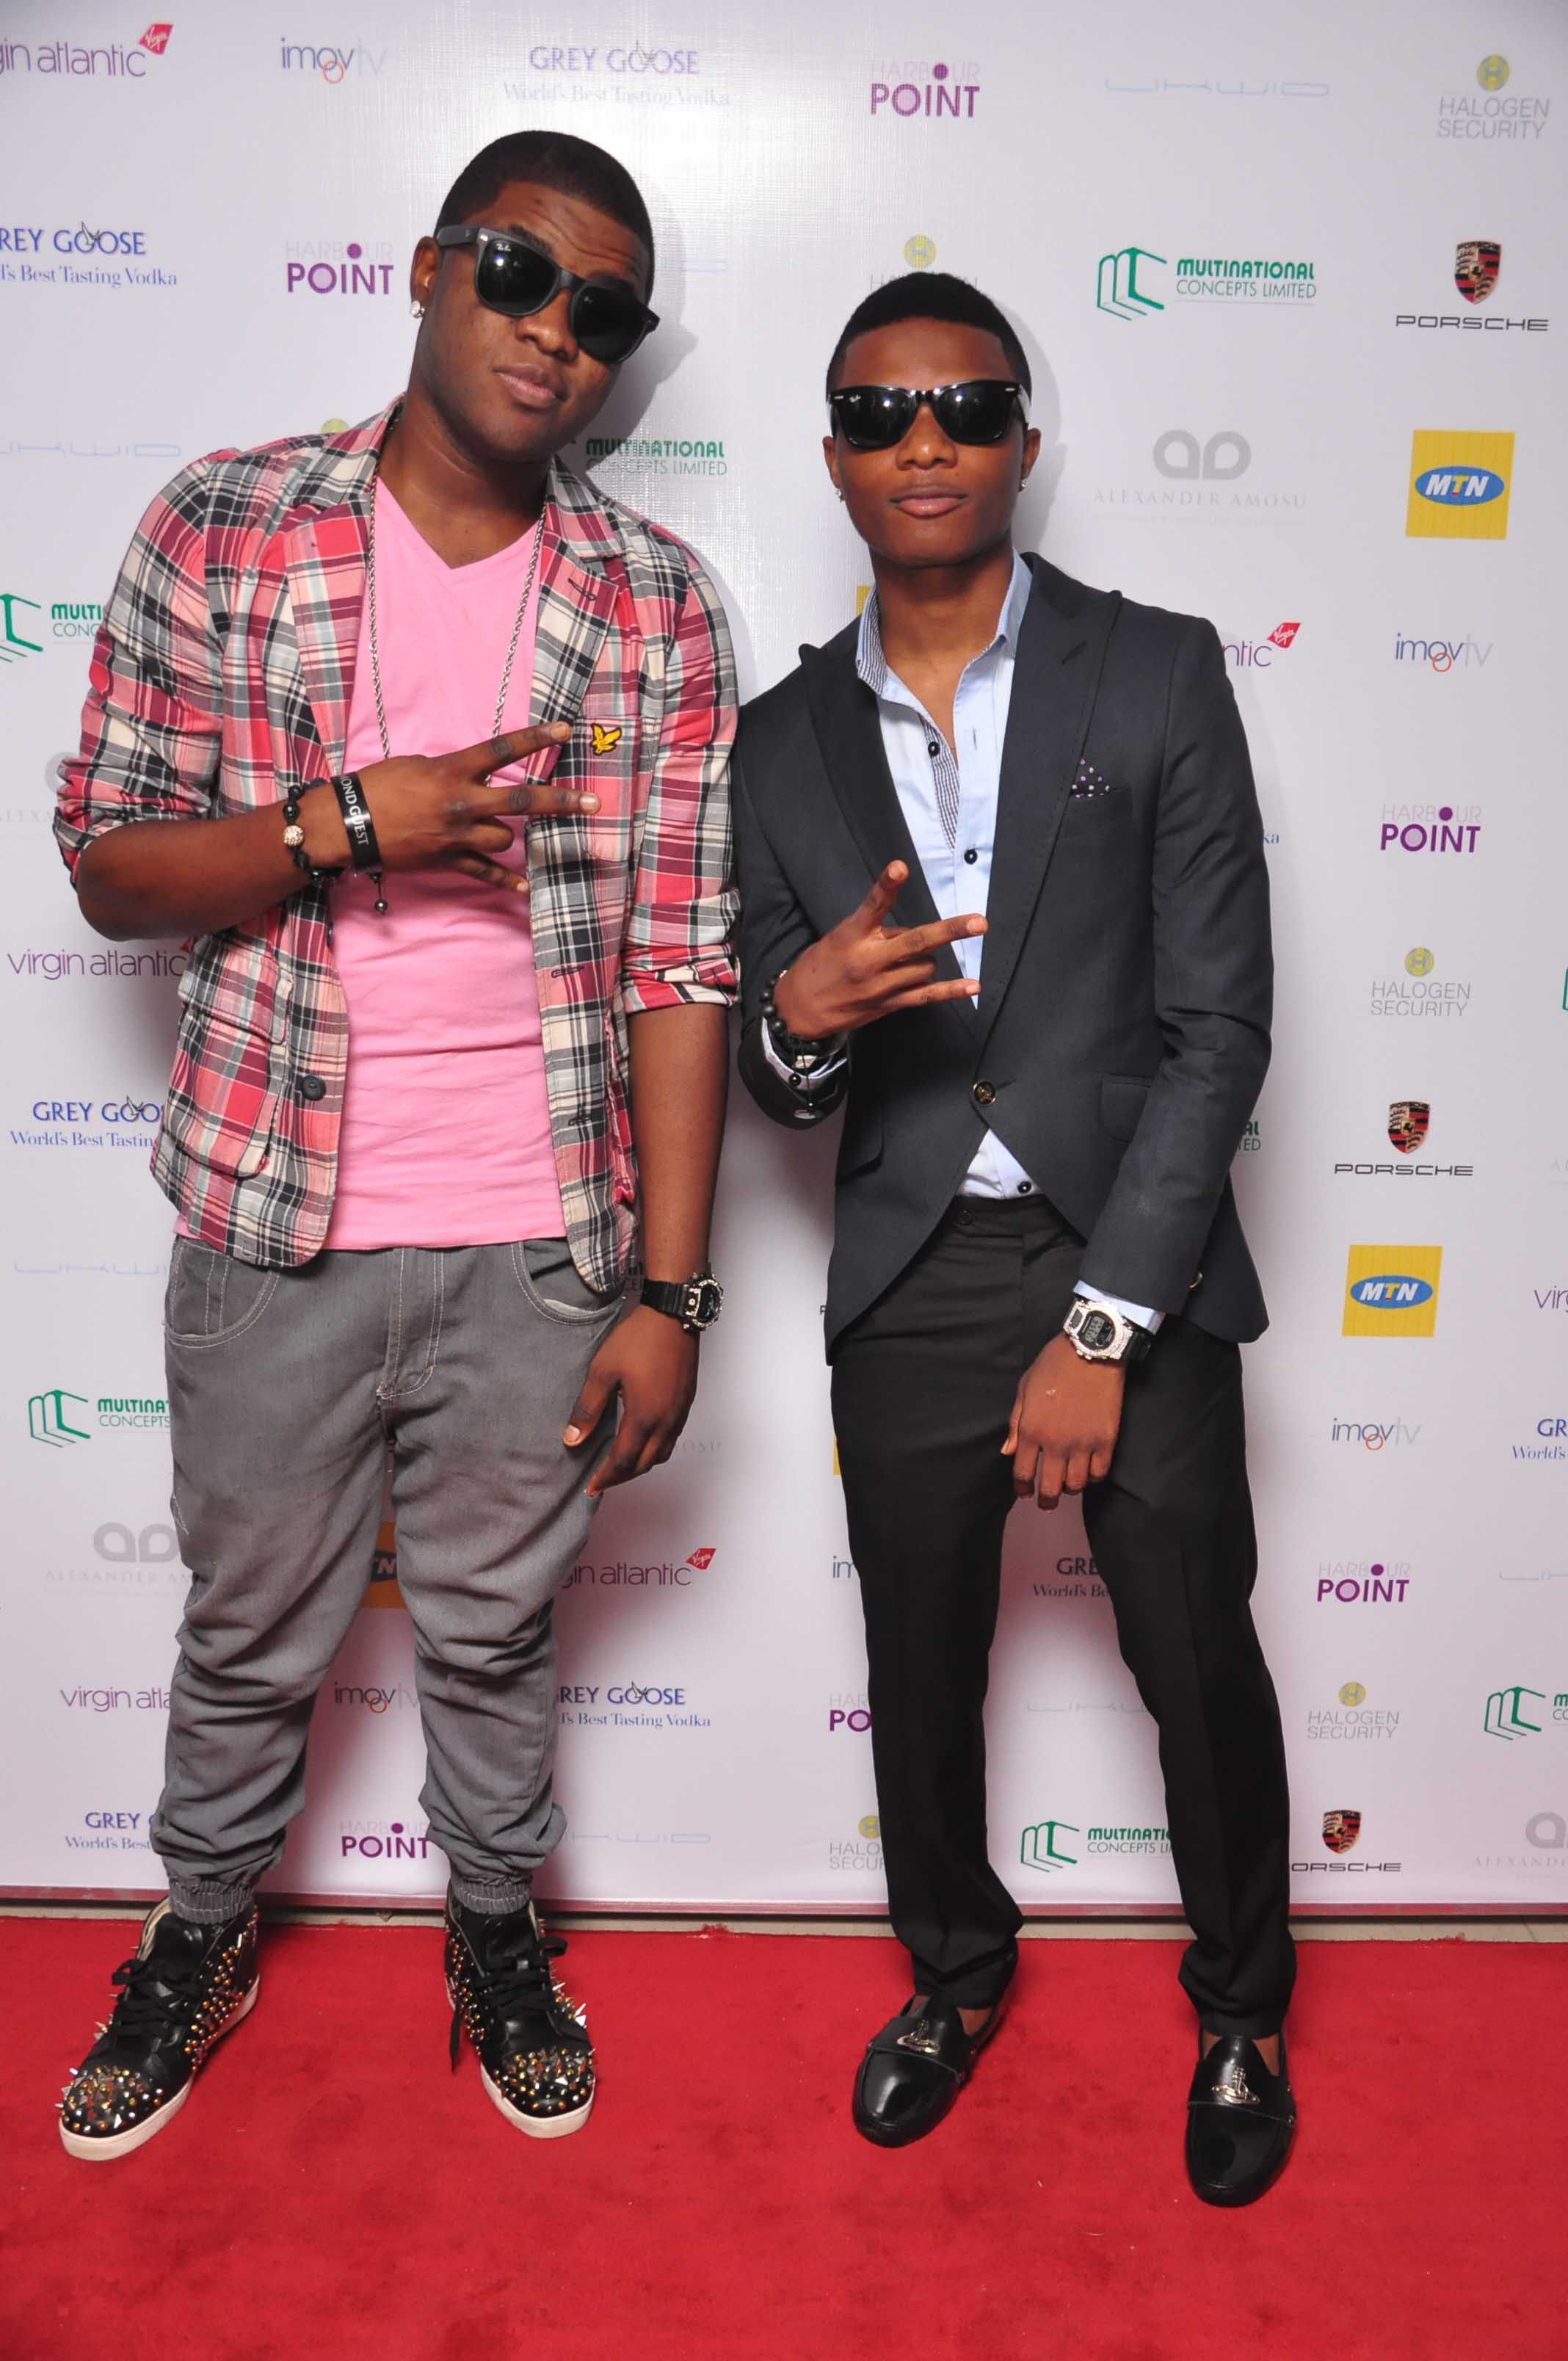 Scales+and+wizkid